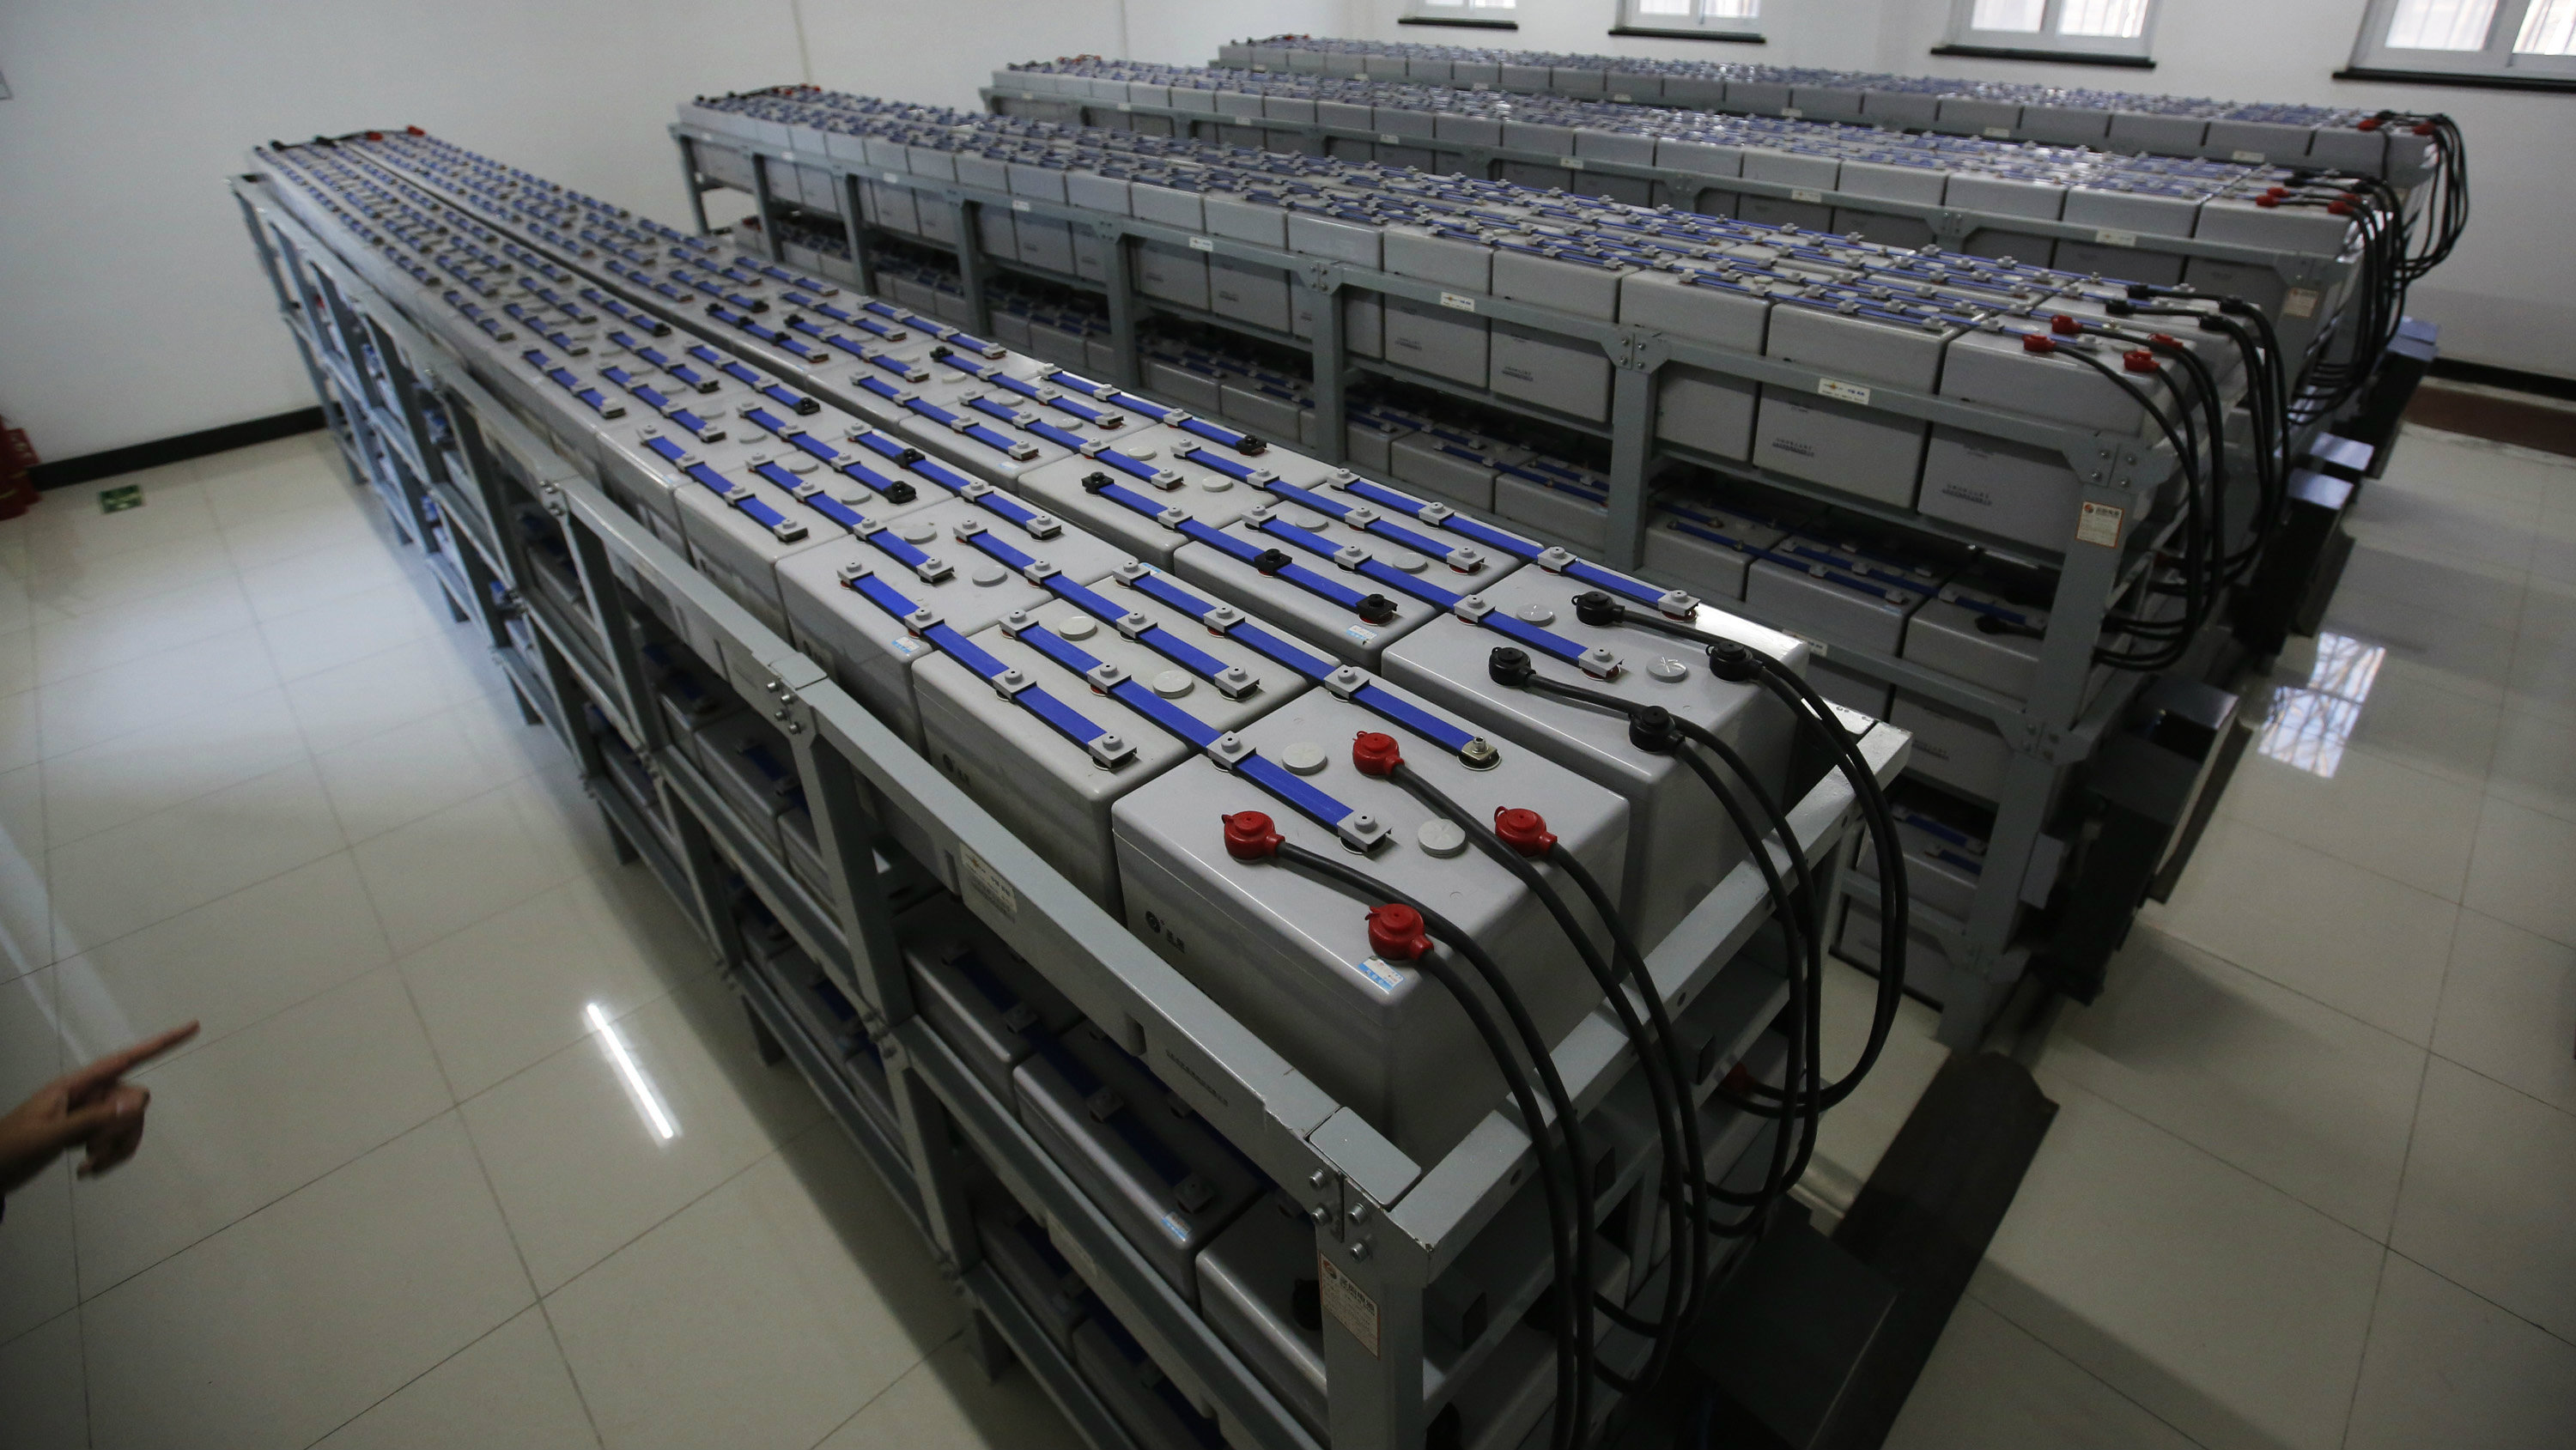 Batteries saving electricity produced by solar power is seen at PetroChina's Yizhuang gas station which has solar power system in Beijing January 9, 2015.